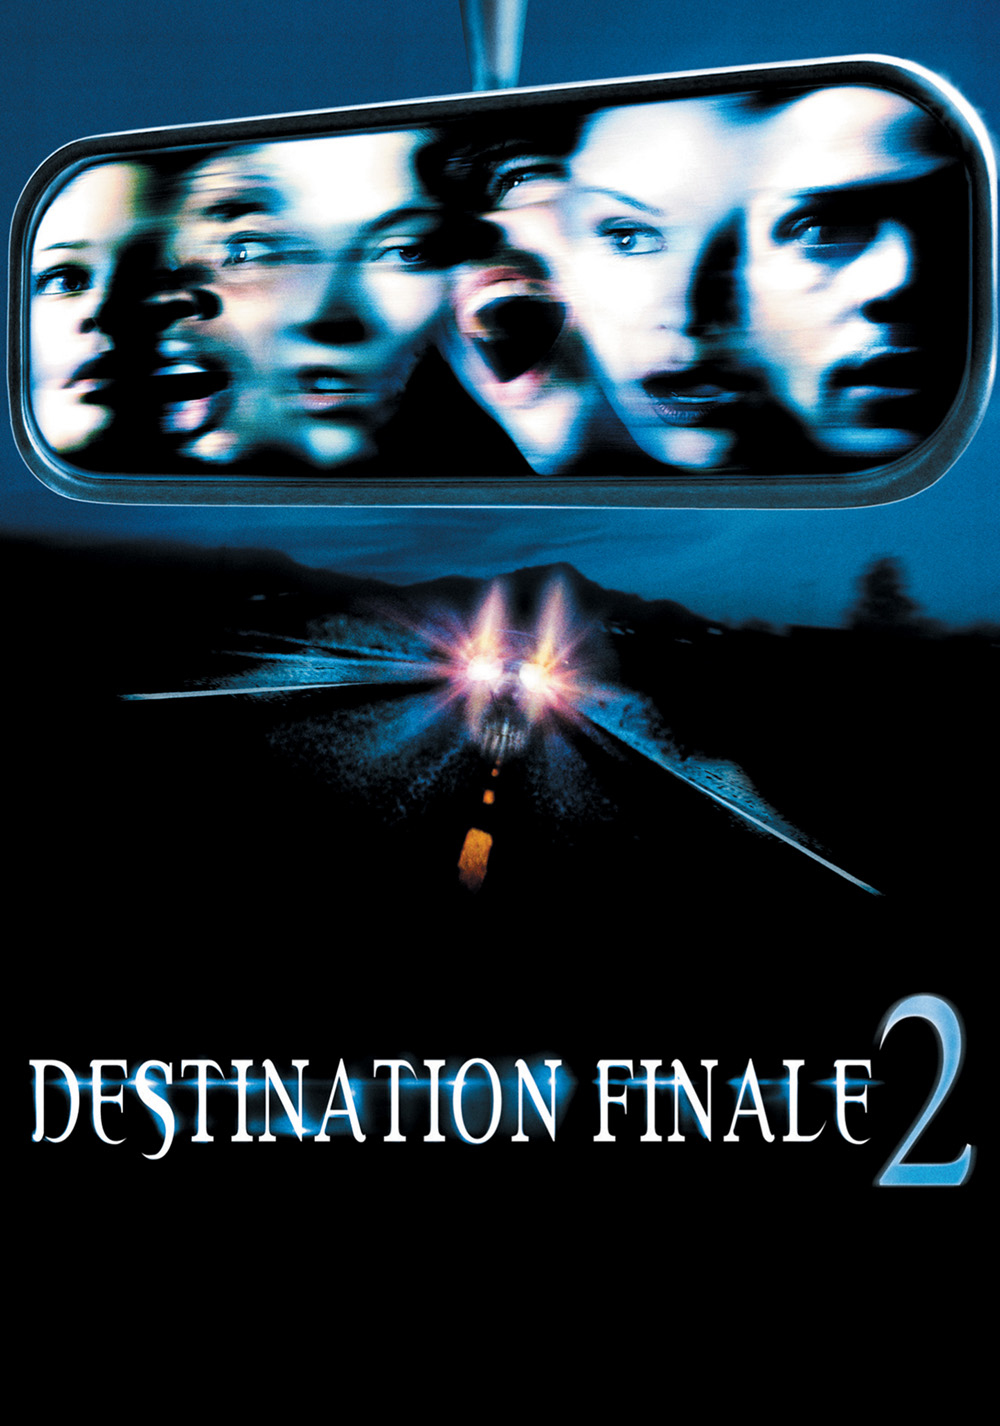 final destination 2 full movie free download in english